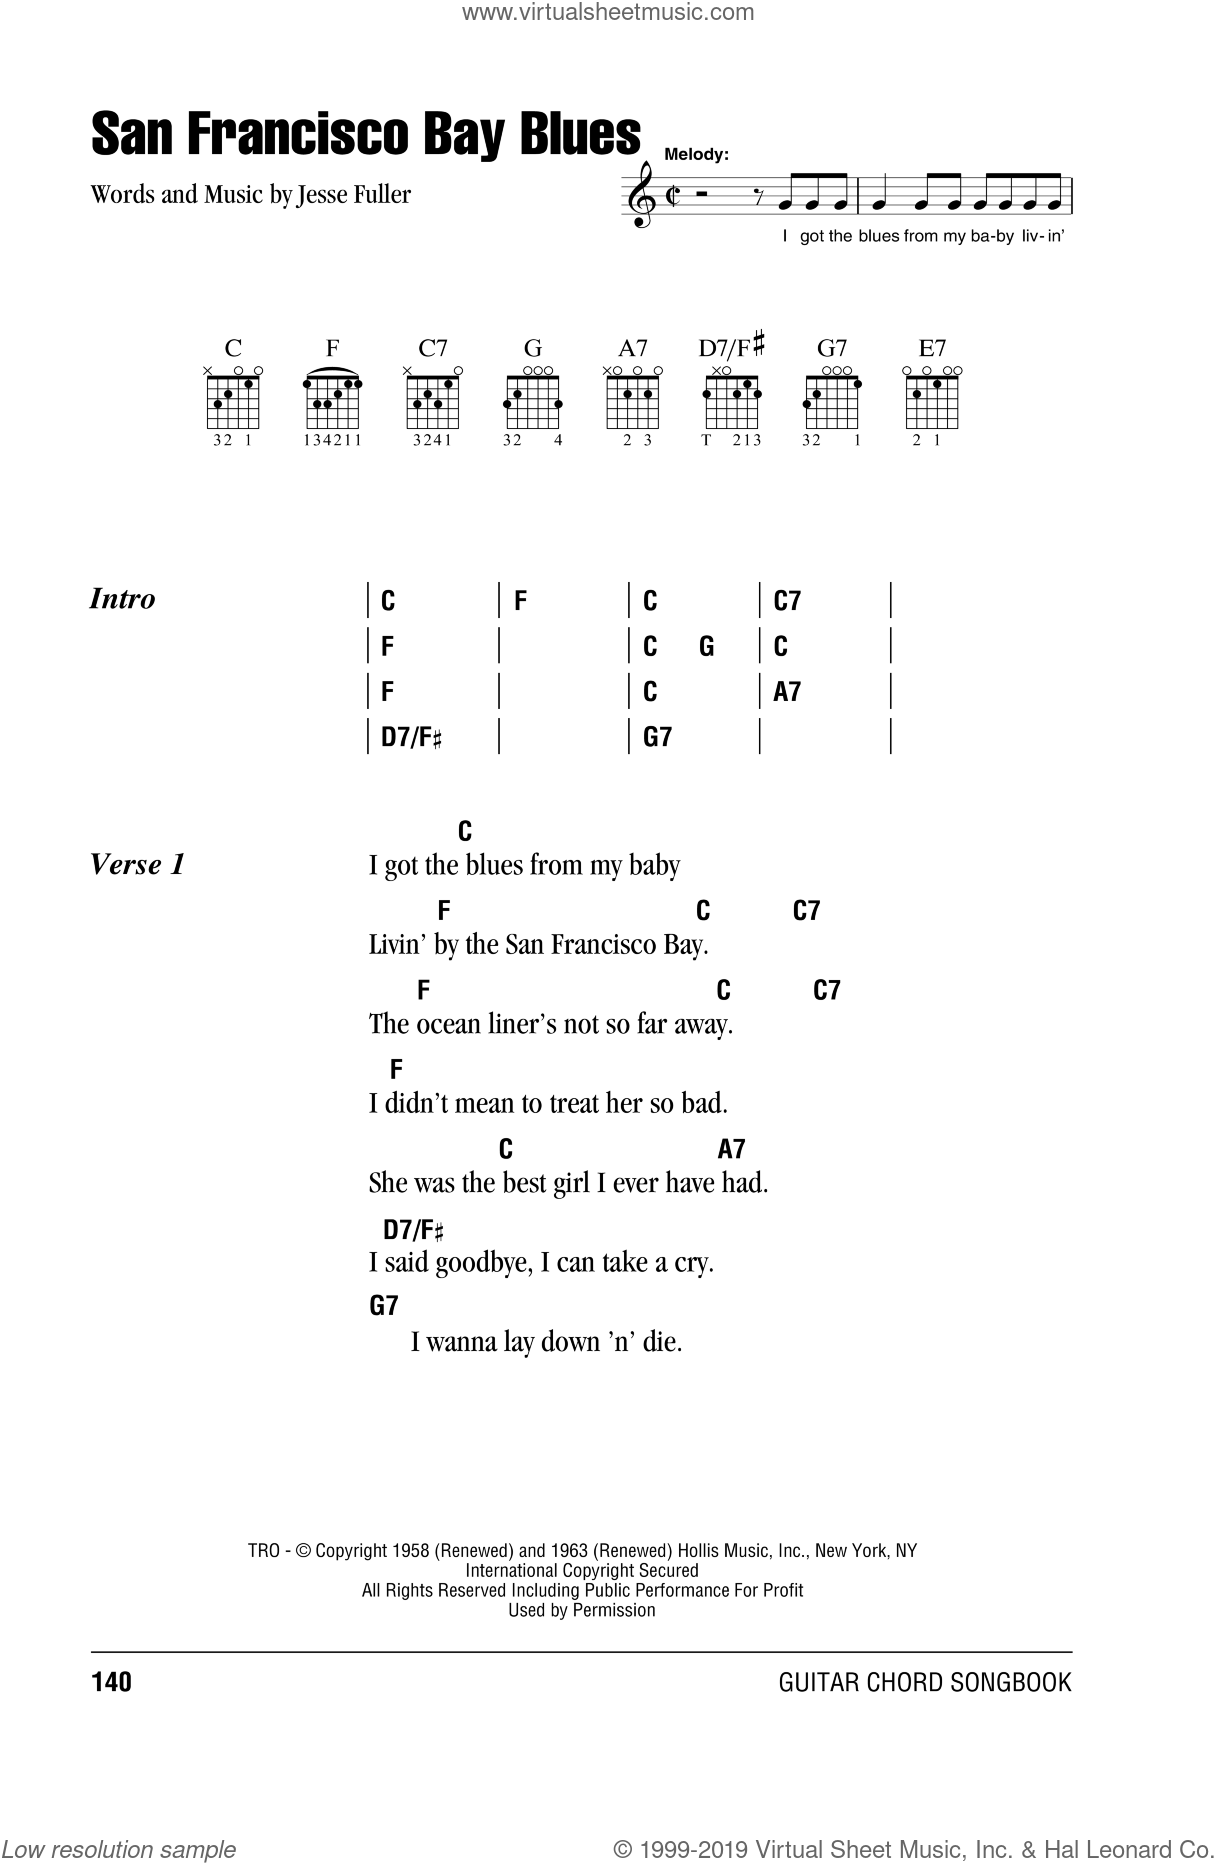 San Francisco Bay Blues sheet music for guitar (chords) by Jesse Fuller